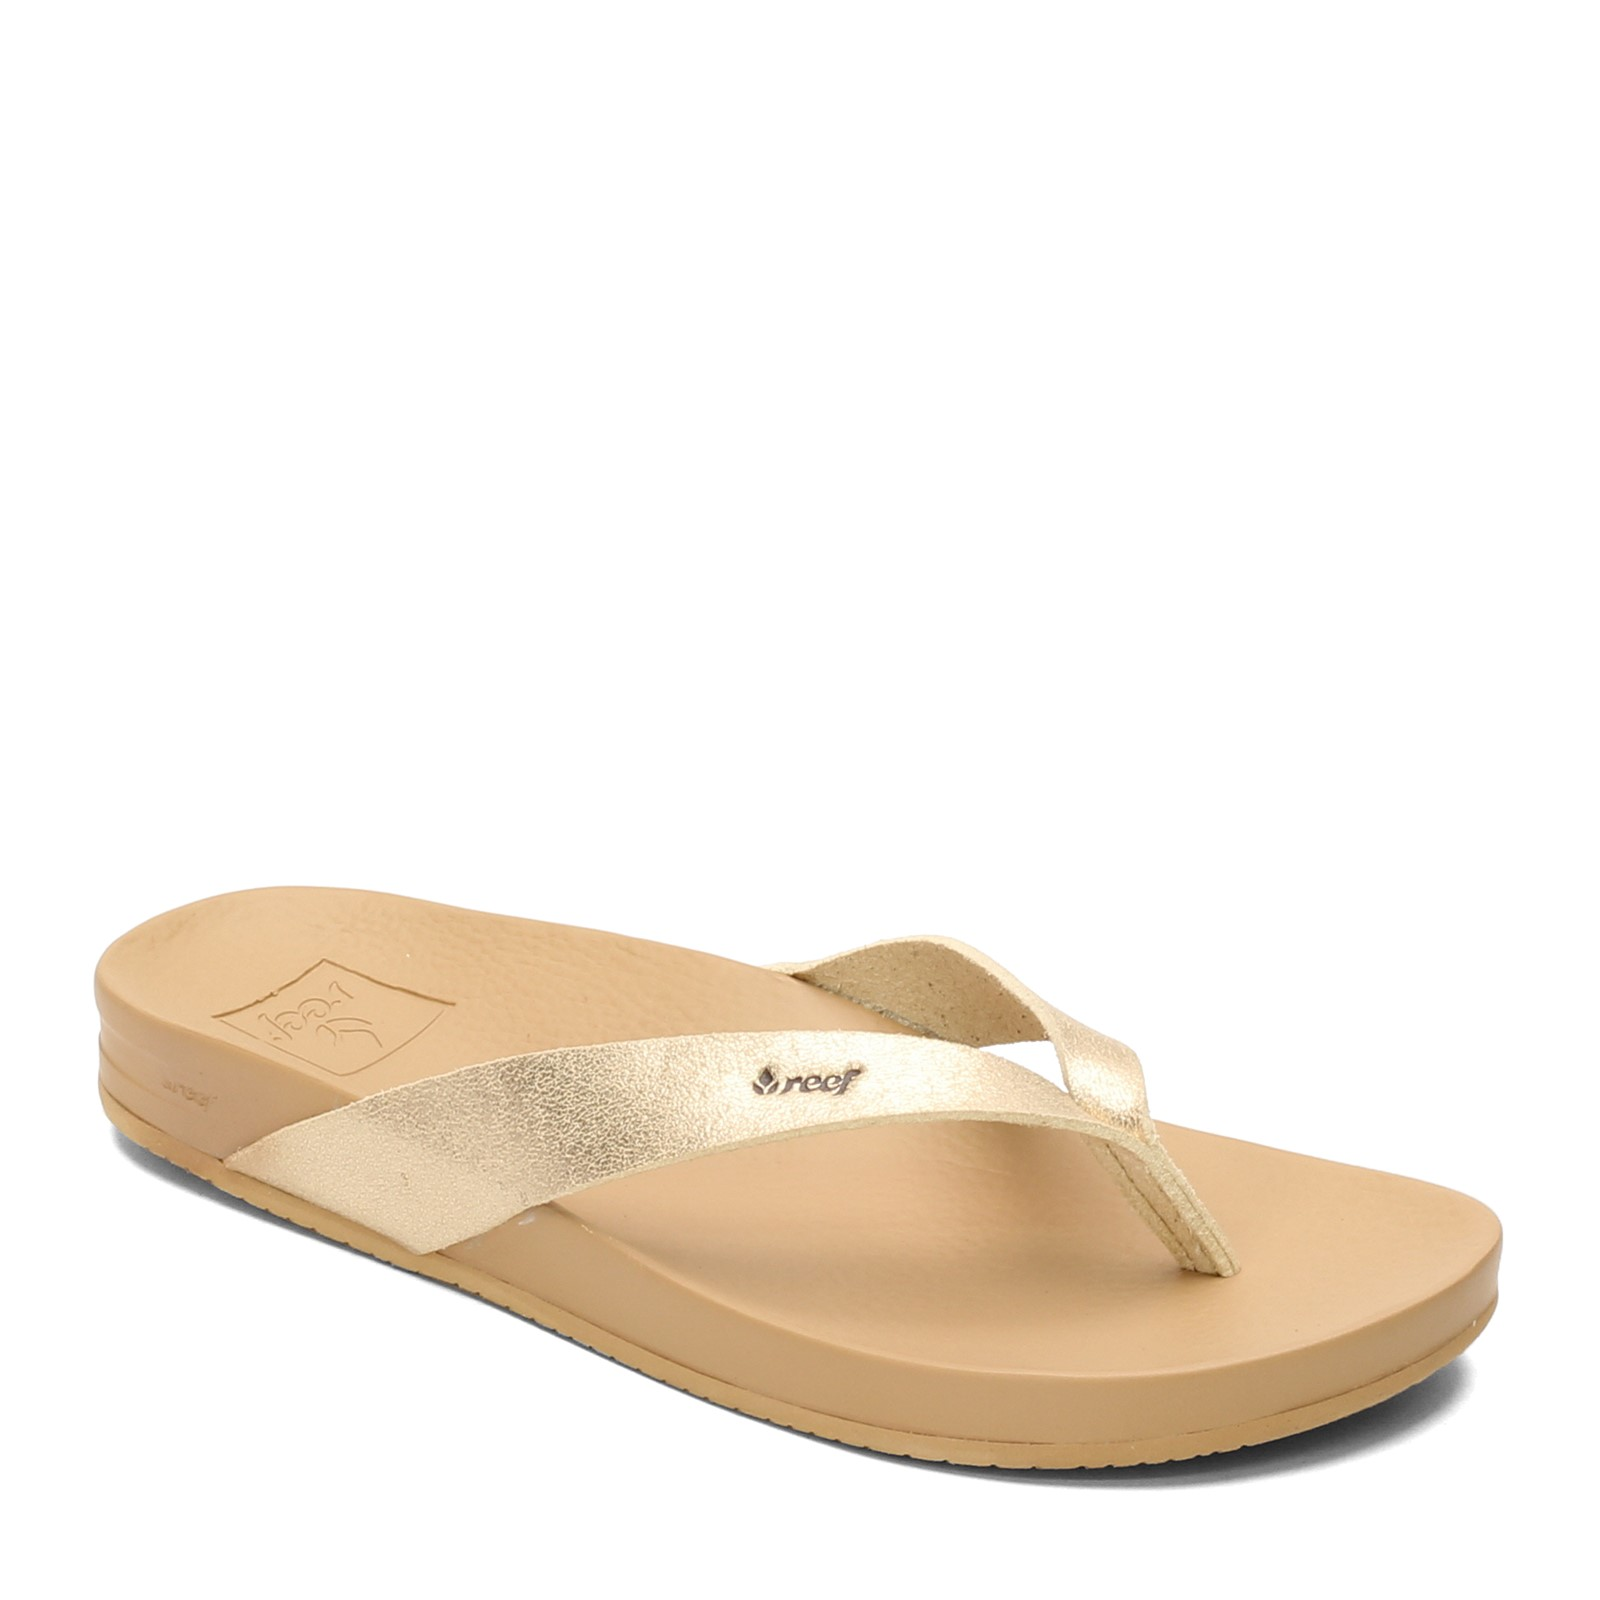 Reef Cushion Bounce Court Sandals